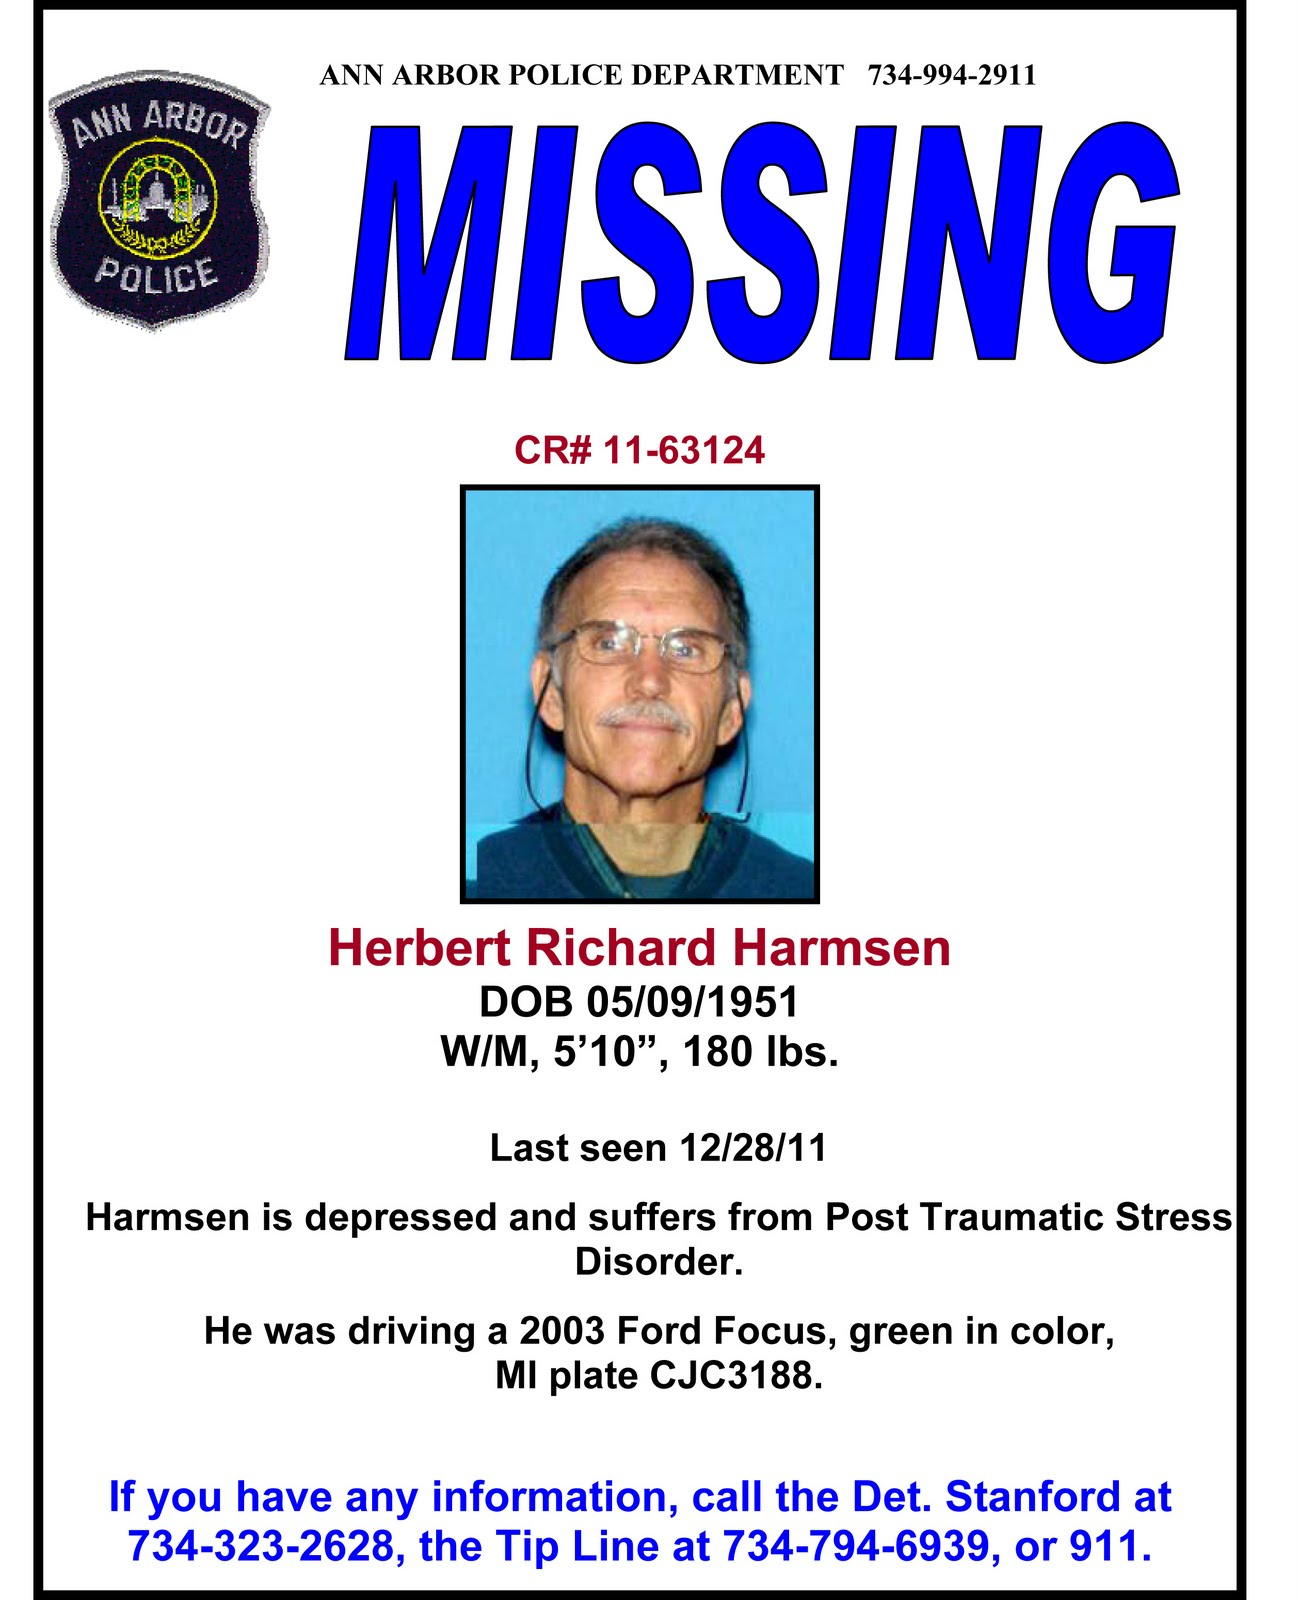 Missing Person Clip Art 7 missing poster template – Missing Poster Generator